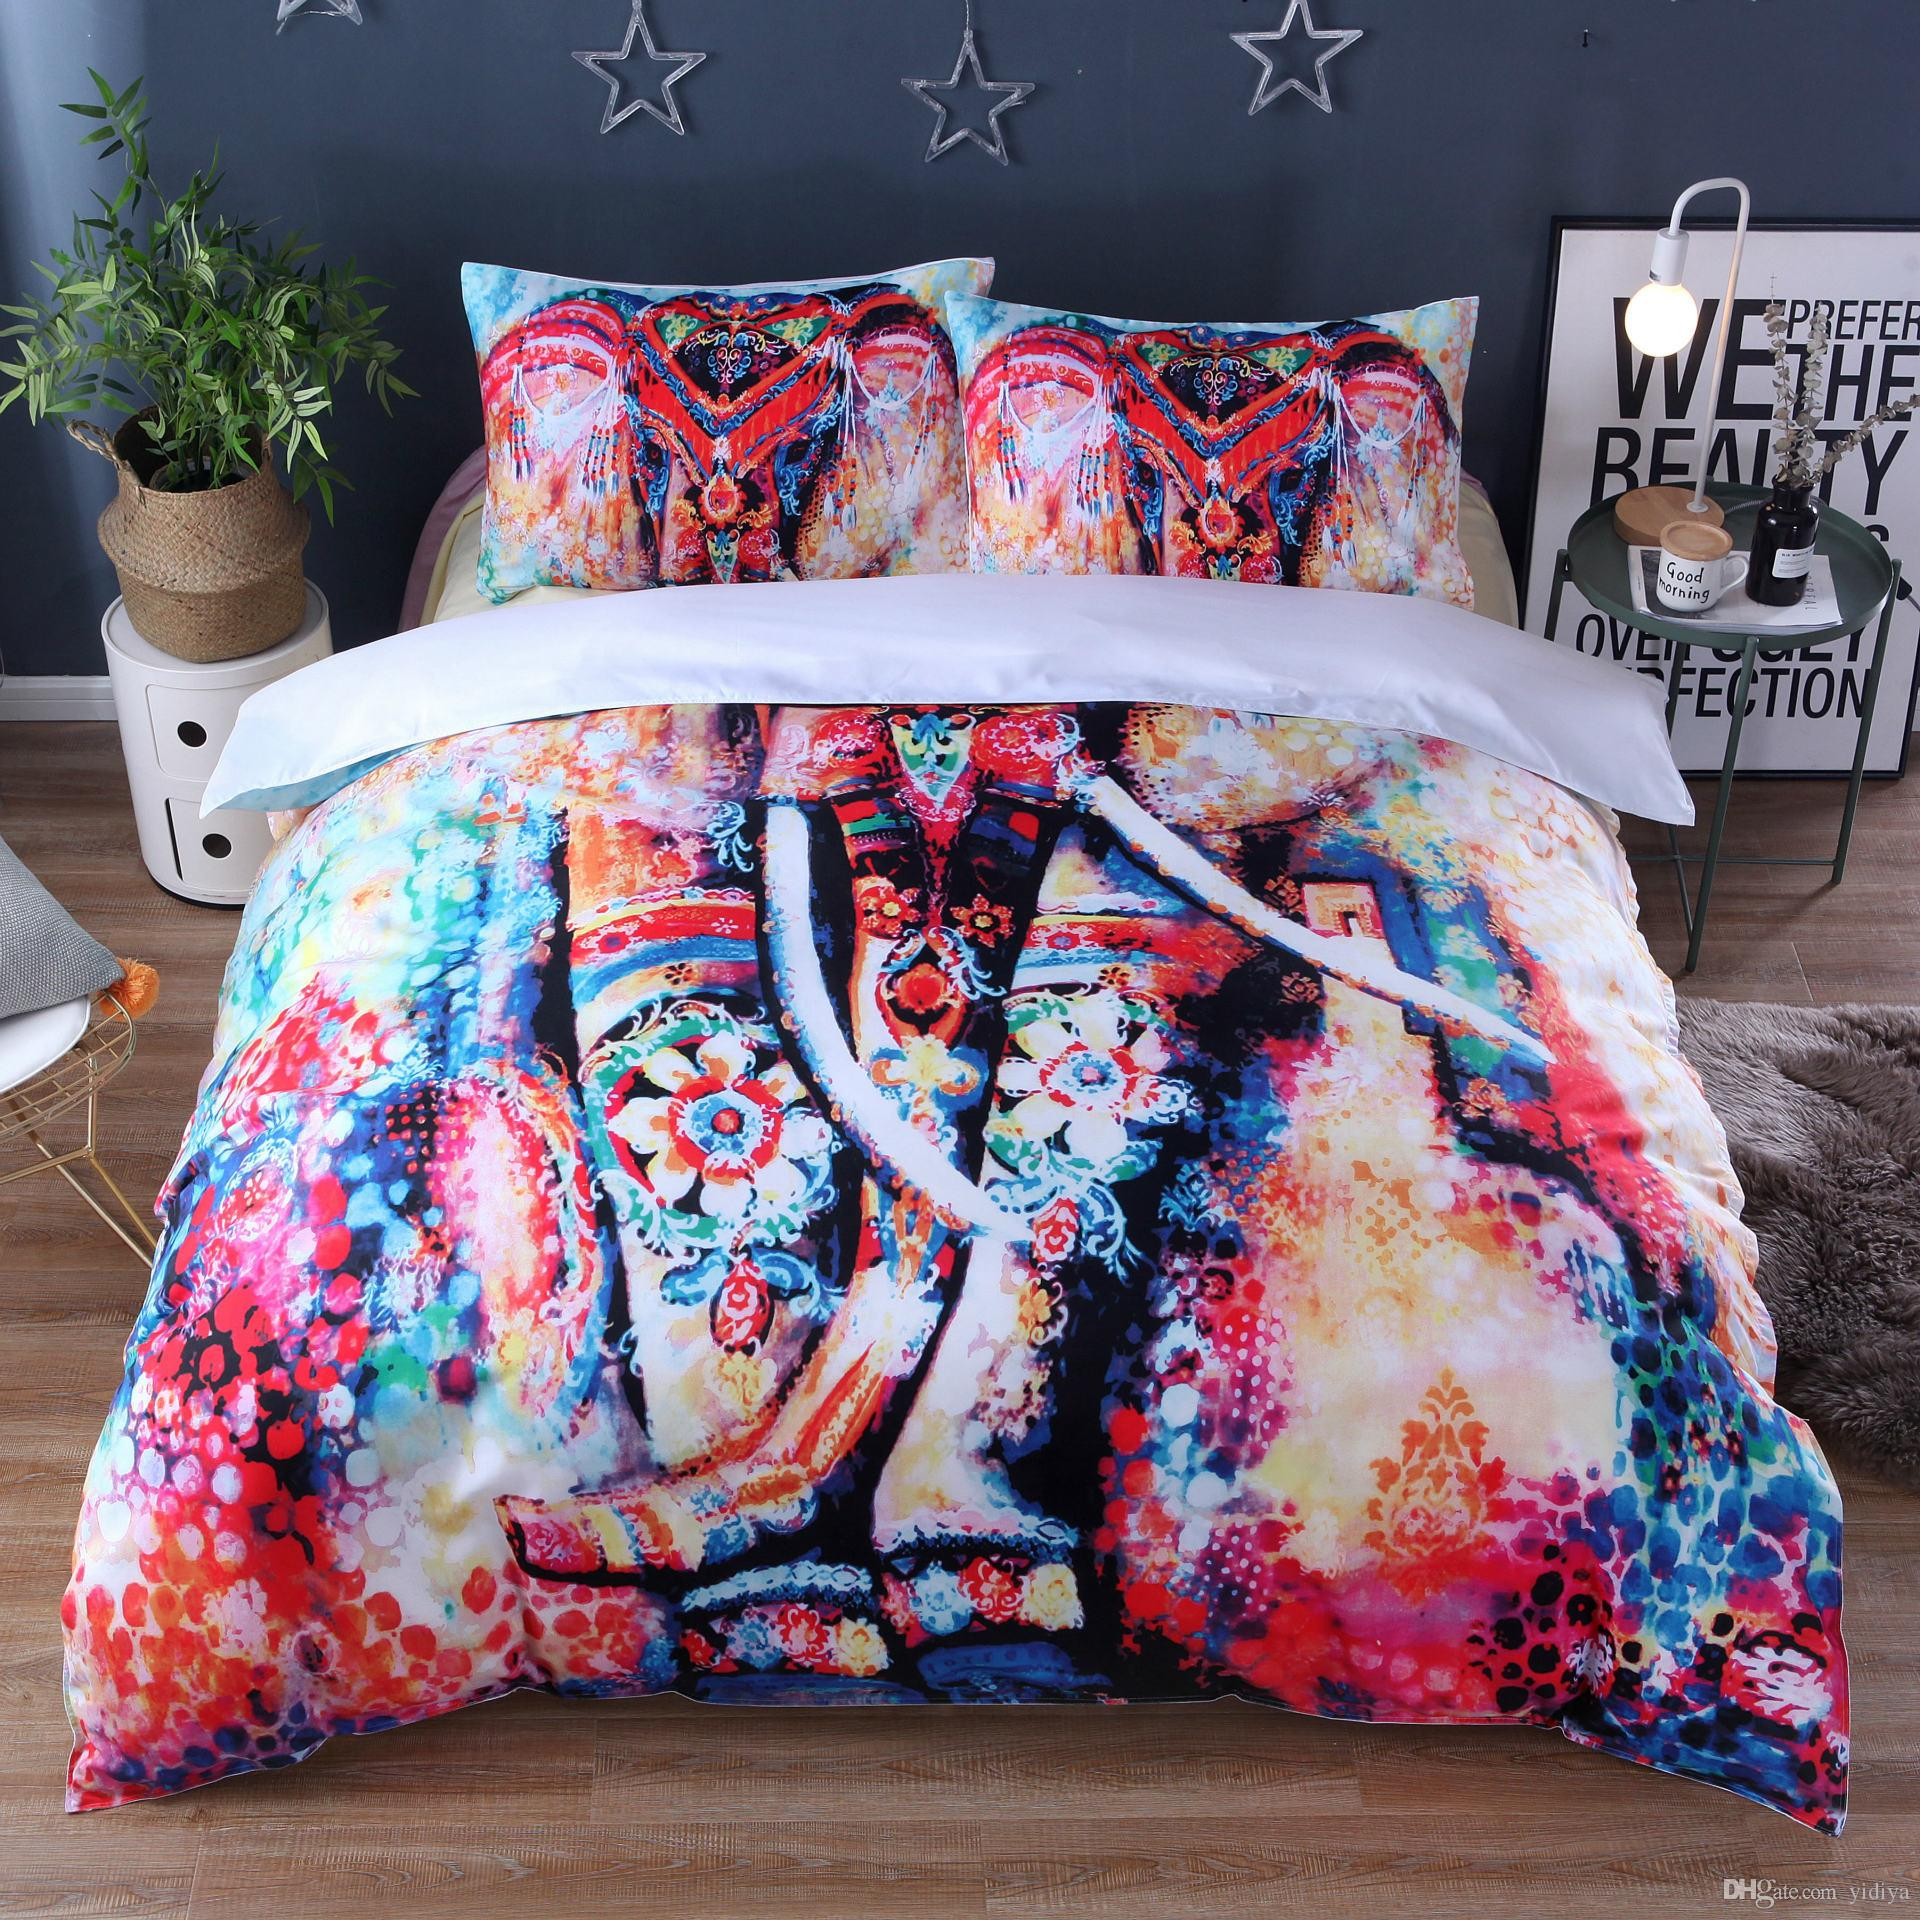 2 Ethnic Elephant Bedding Set Bohemian Printed Duvet Cover Set And Pillow Sham Mandala Bedclothes Bed Linen Twin Queen Luxury Comforter Set Bedding Sets Queen Cheap From Yidiya 48 65 Dhgate Com